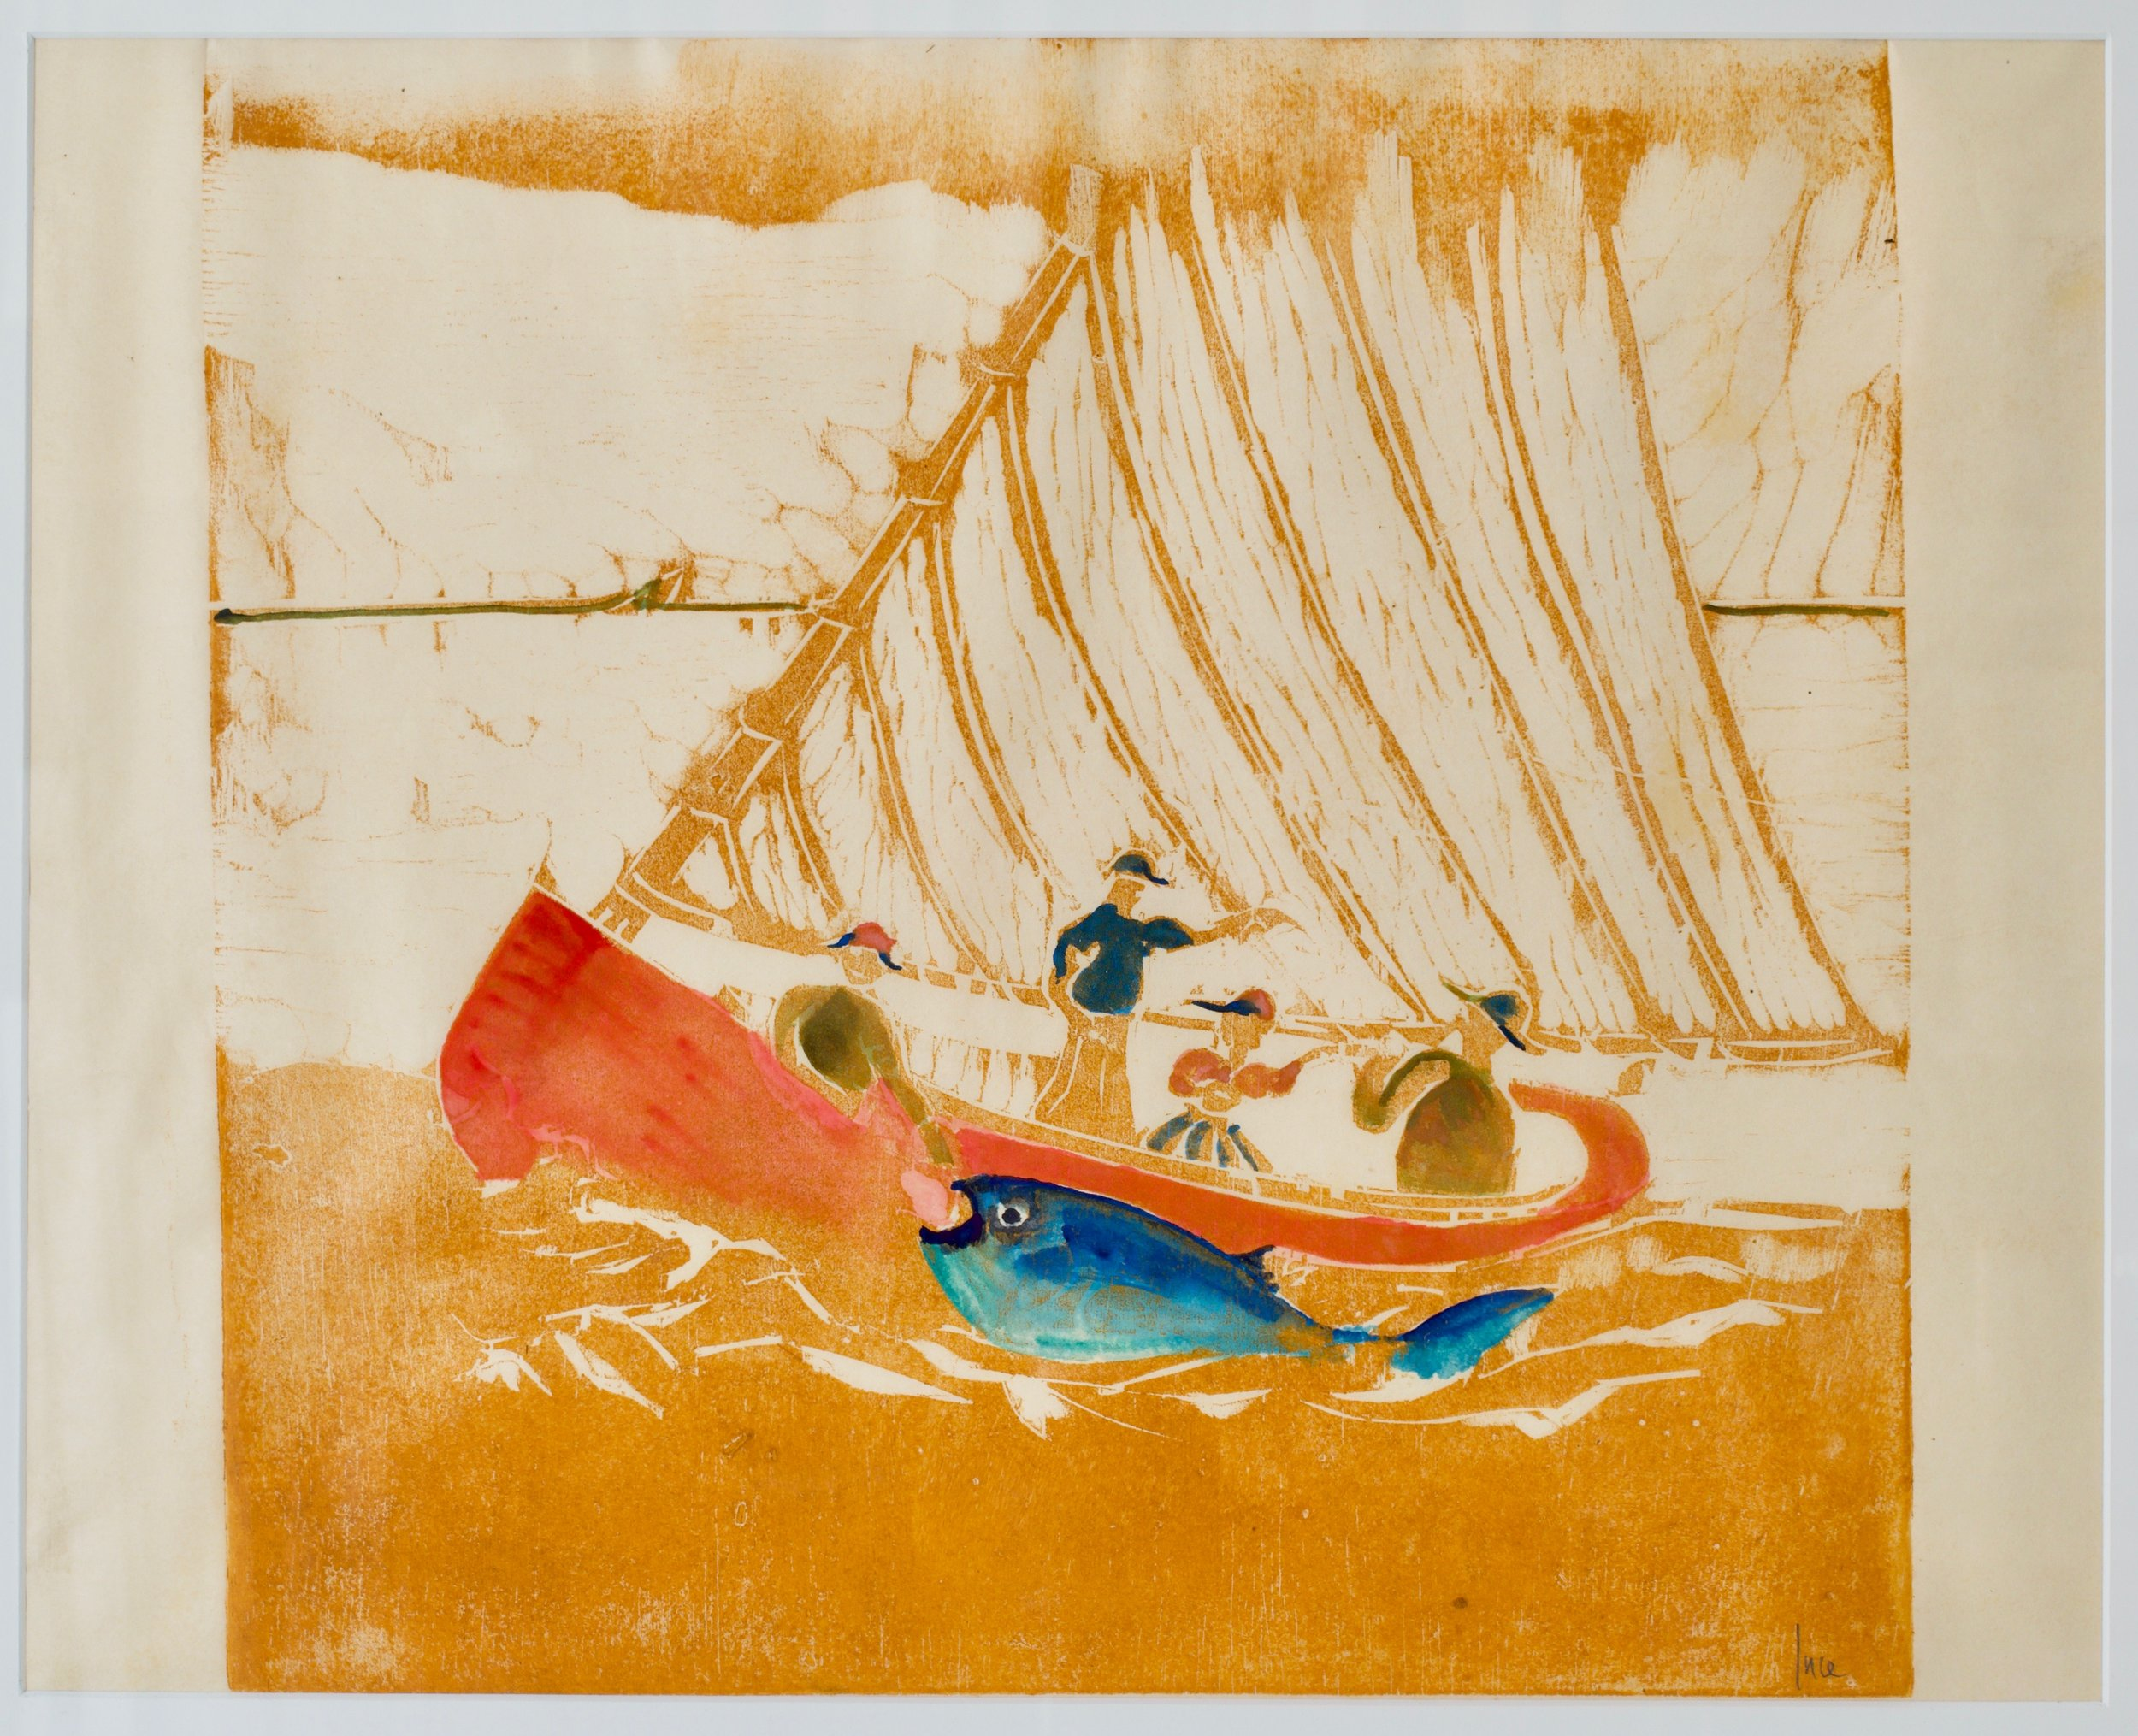 Michael Ince, Cat Boat And Big Fish,  Woodcut 2003, printed 2019.  Wood block, oil, watercolor on paper, 21 x 29 inches (framed)